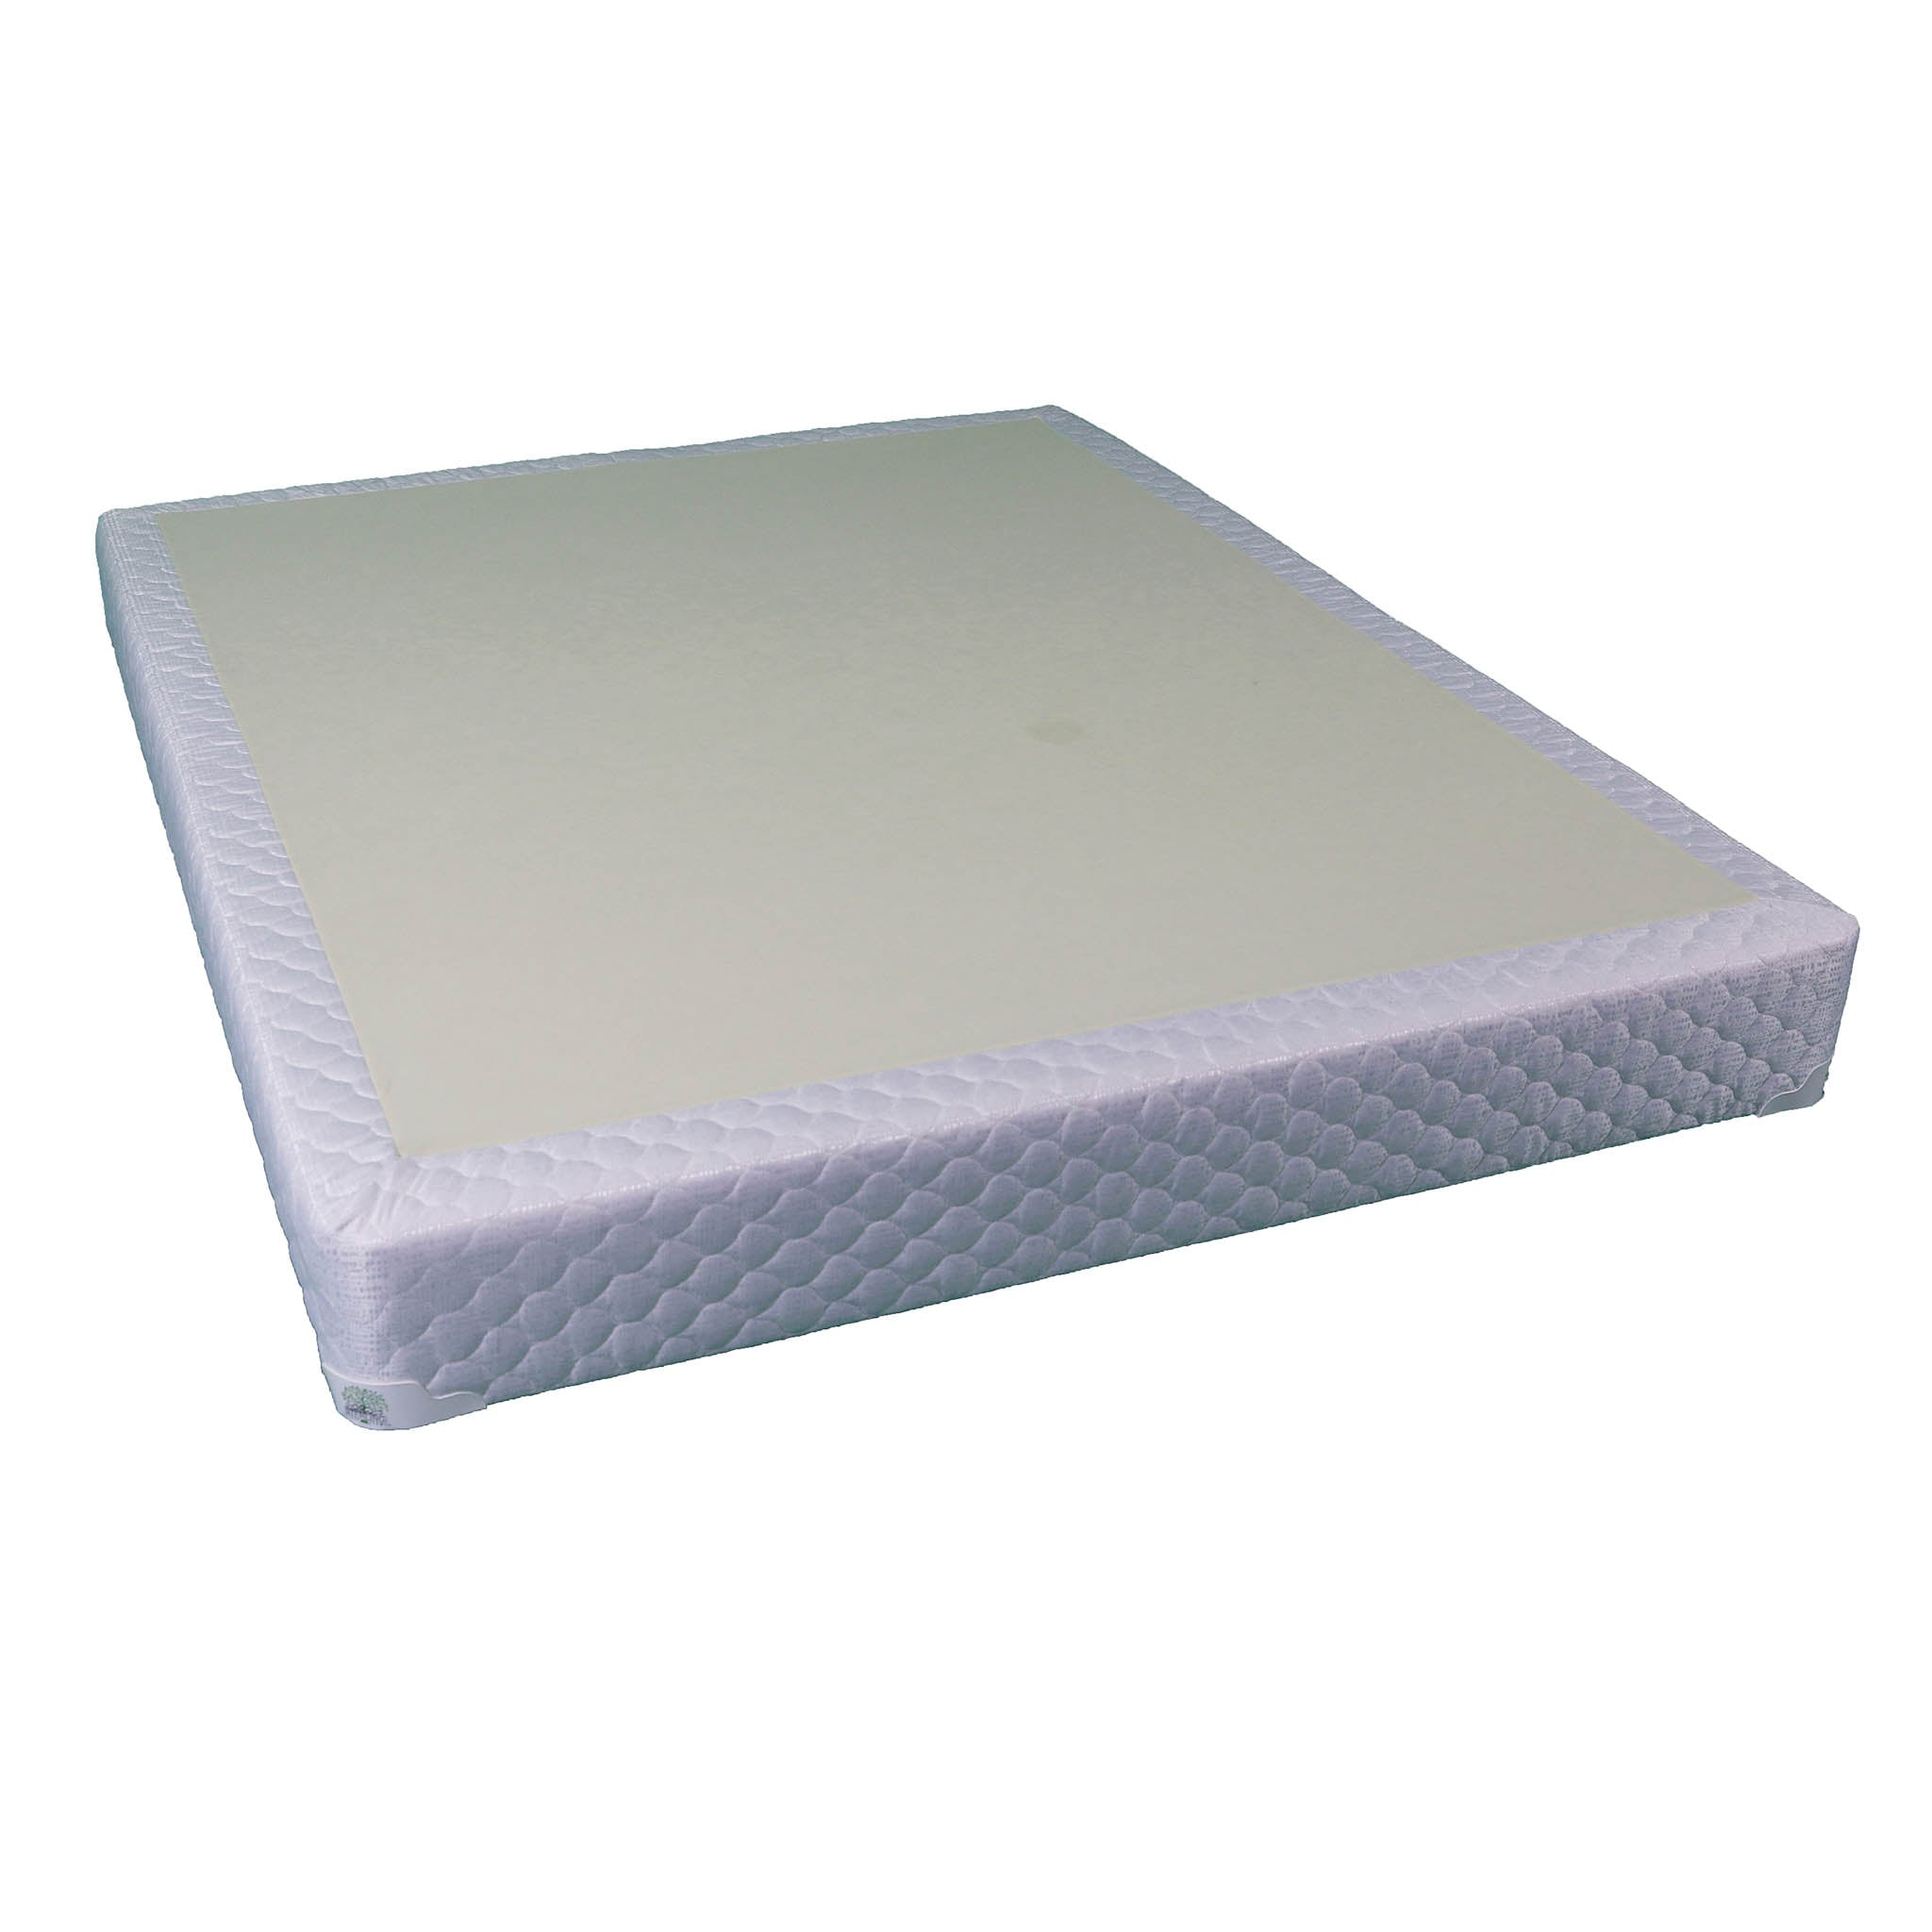 Mattress Foundation 9 For Silver Lining Mattress